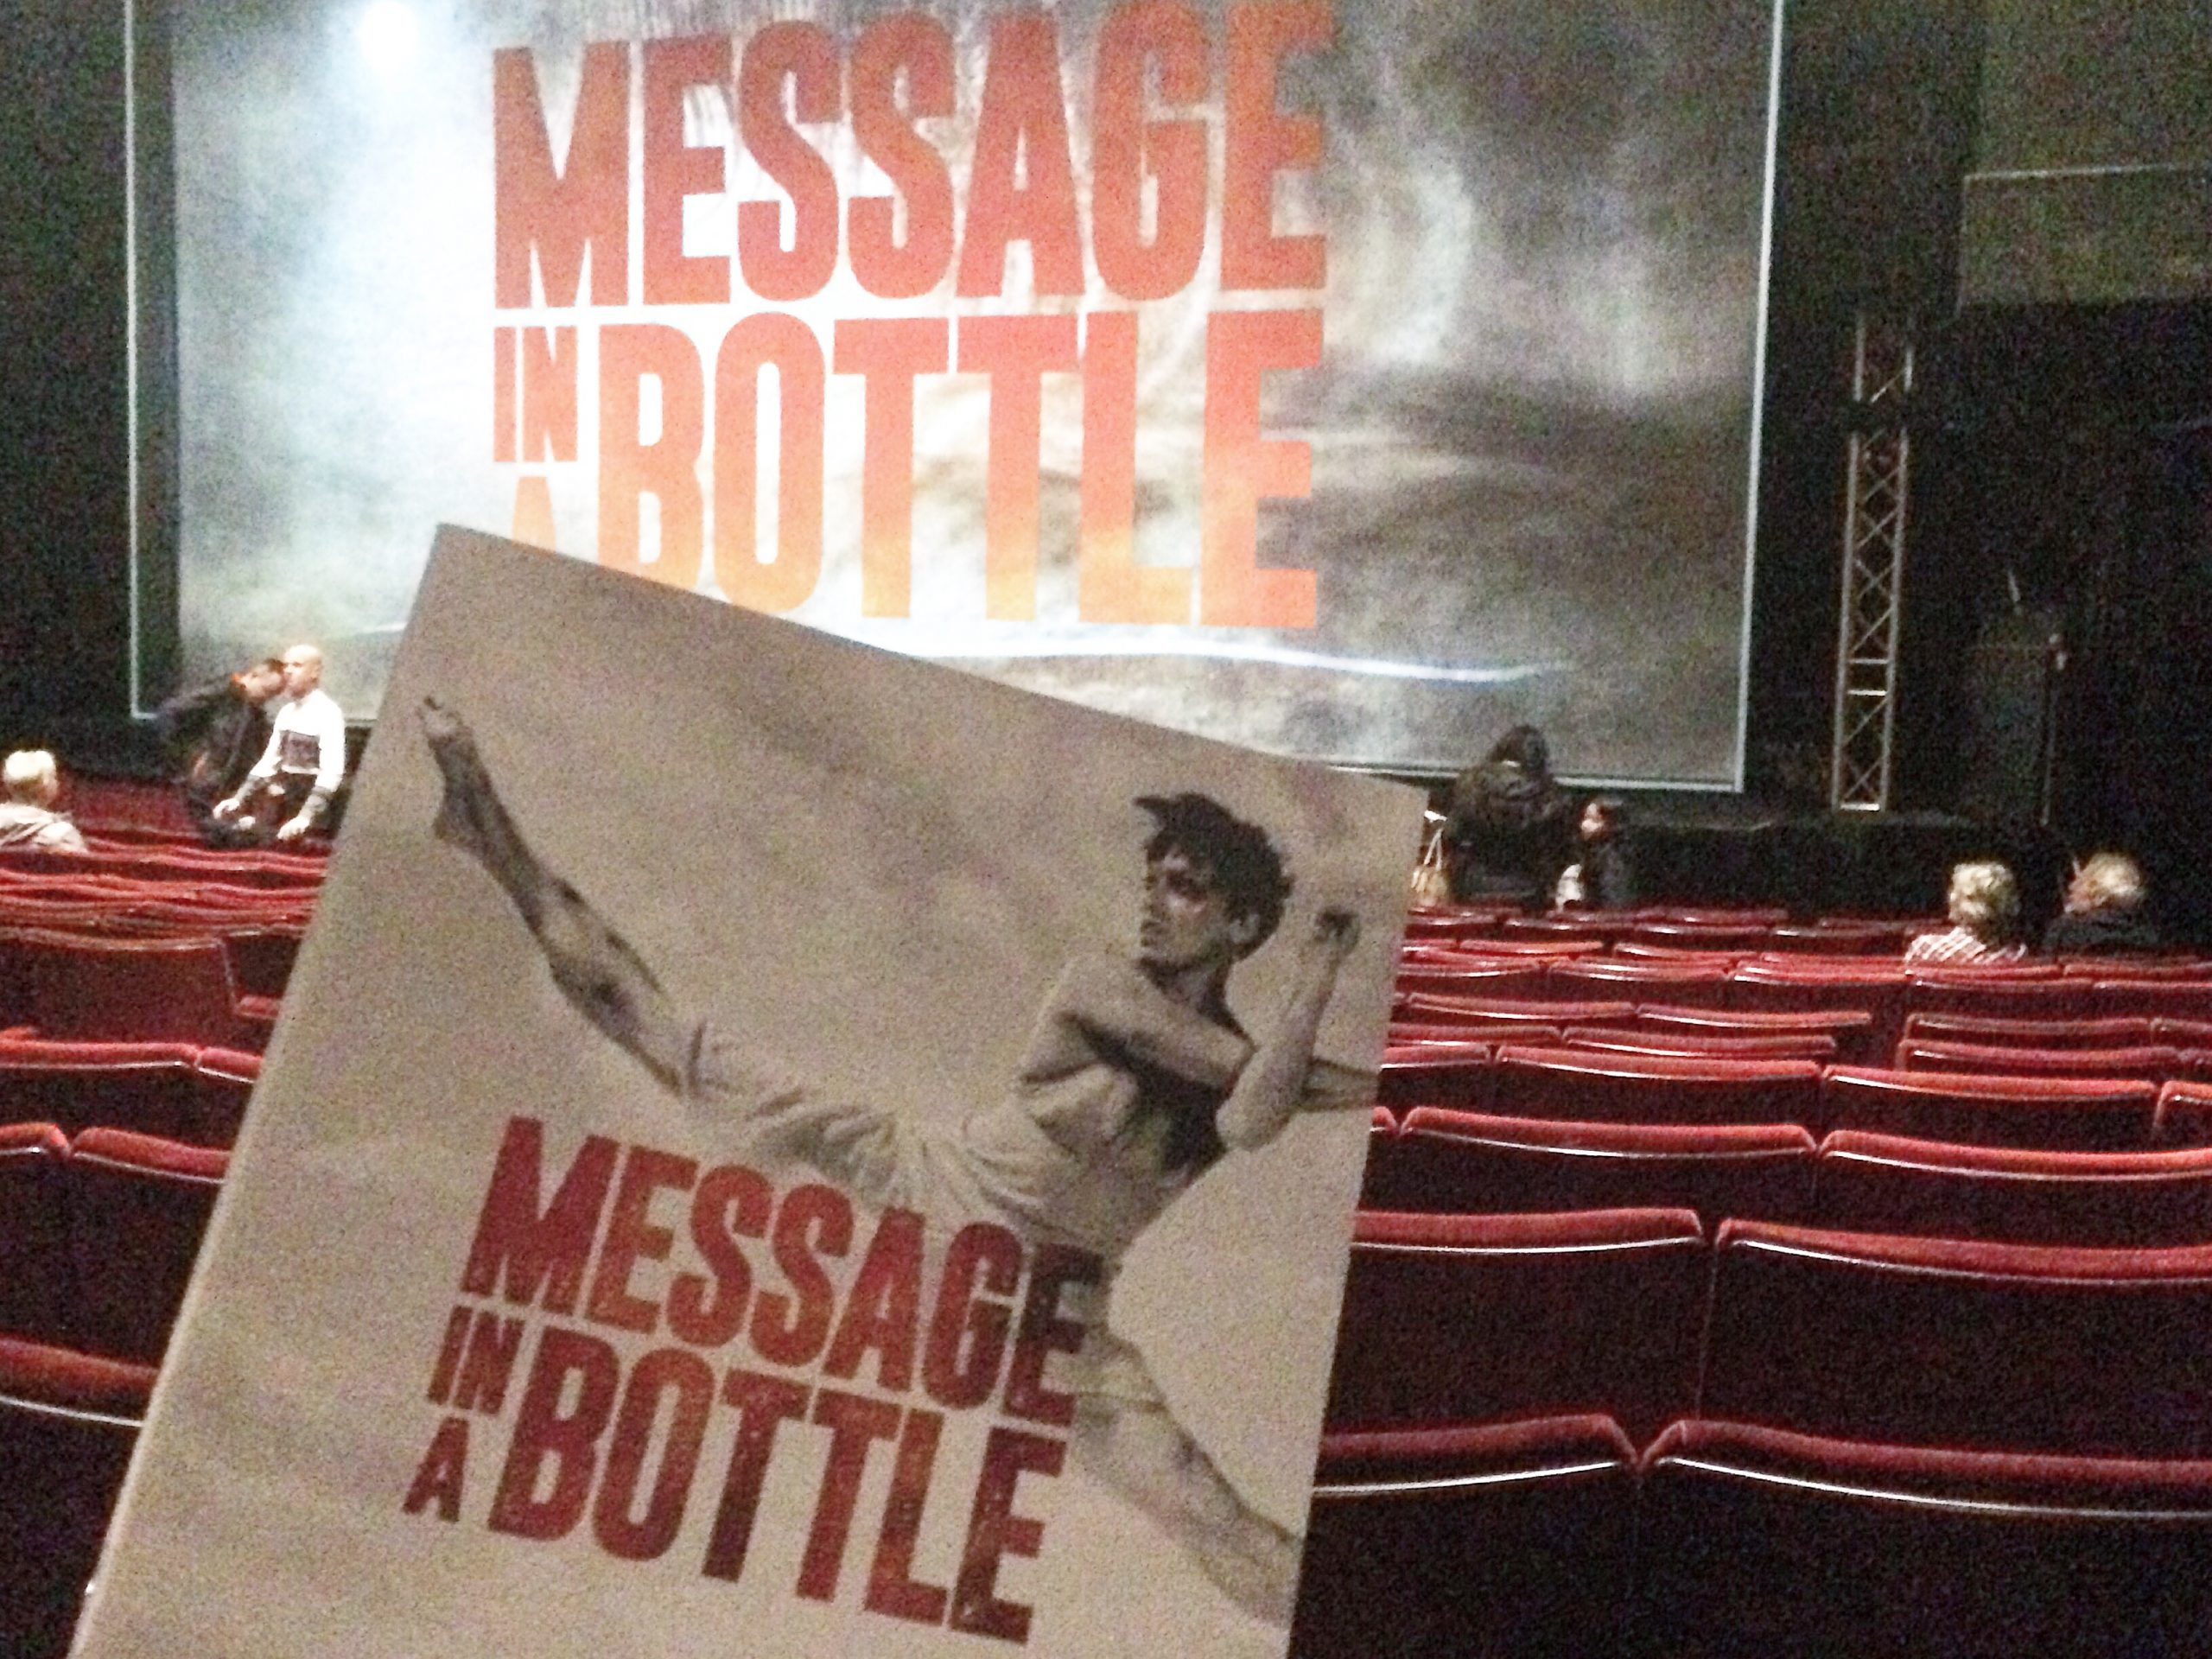 message-in-a-bottle-review-1